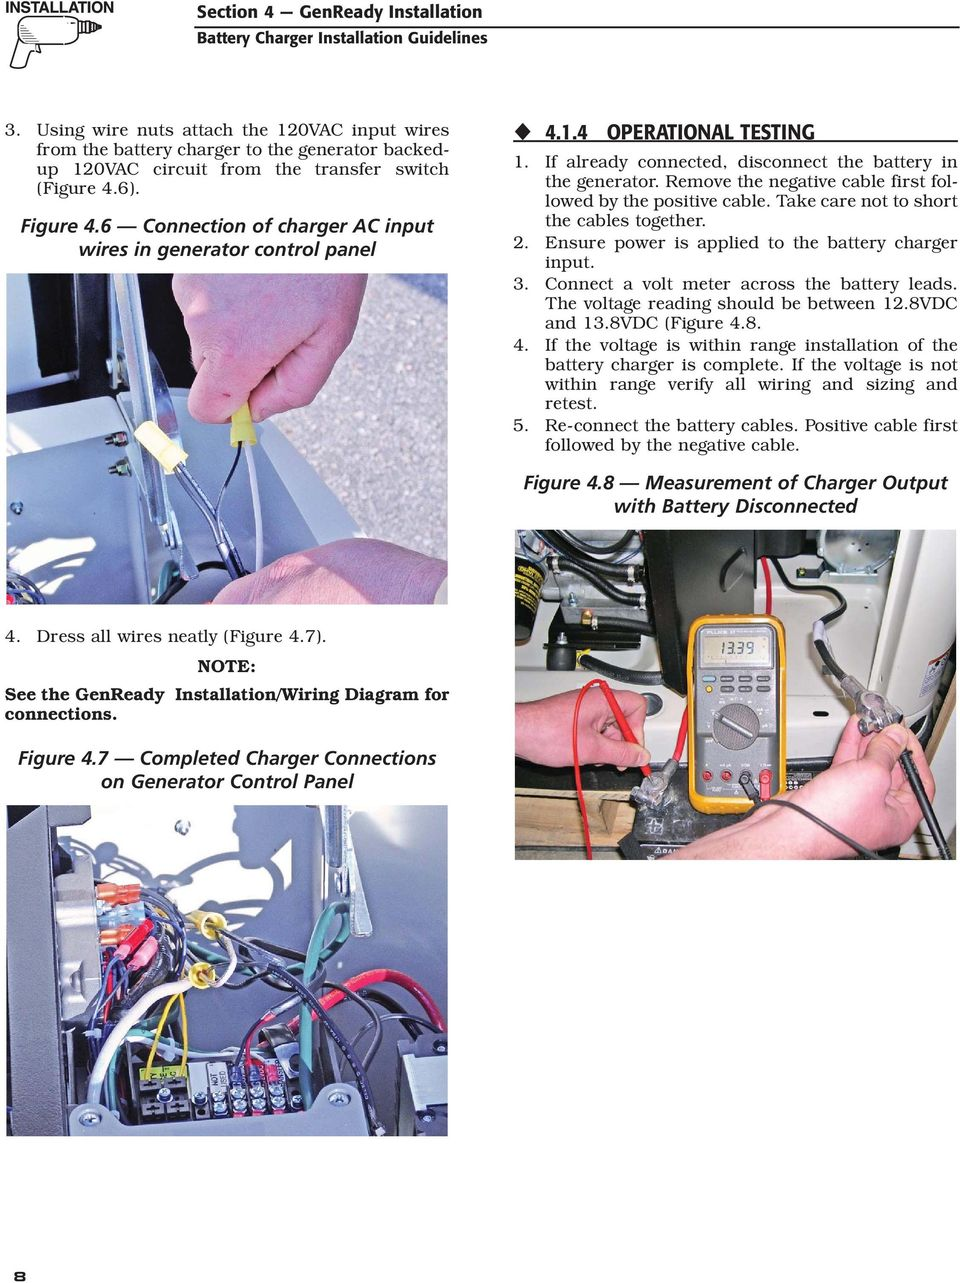 Air Cooled Generator Battery Charger Installation Guidelines Pdf Disconnect Wiring Diagrams Remove The Negative Cable First Followed By Positive Take Care Not To Short